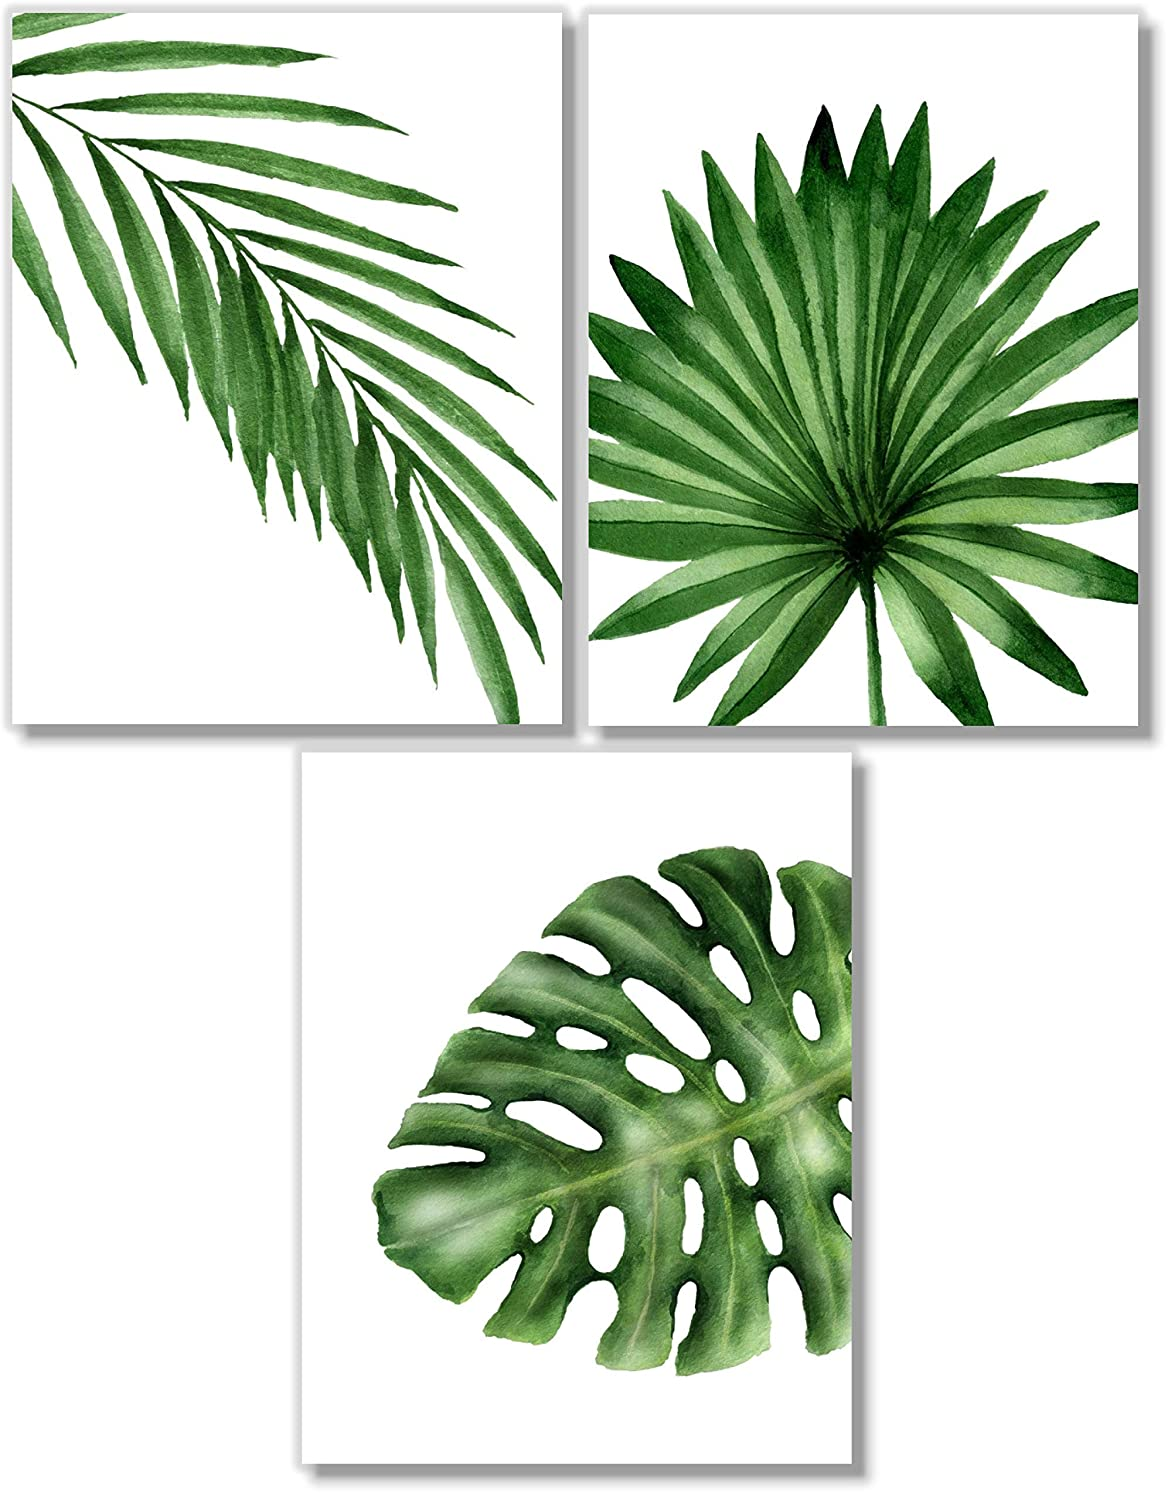 Amazon Com Tropical Leaves Art Prints Botanical Prints Wall Art Watercolor Monstera Date Palm Leaf Decor Set Of 3 8x10 Unframed Handmade You can edit any of drawings via our online image editor before downloading. tropical leaves art prints botanical prints wall art watercolor monstera date palm leaf decor set of 3 8x10 unframed